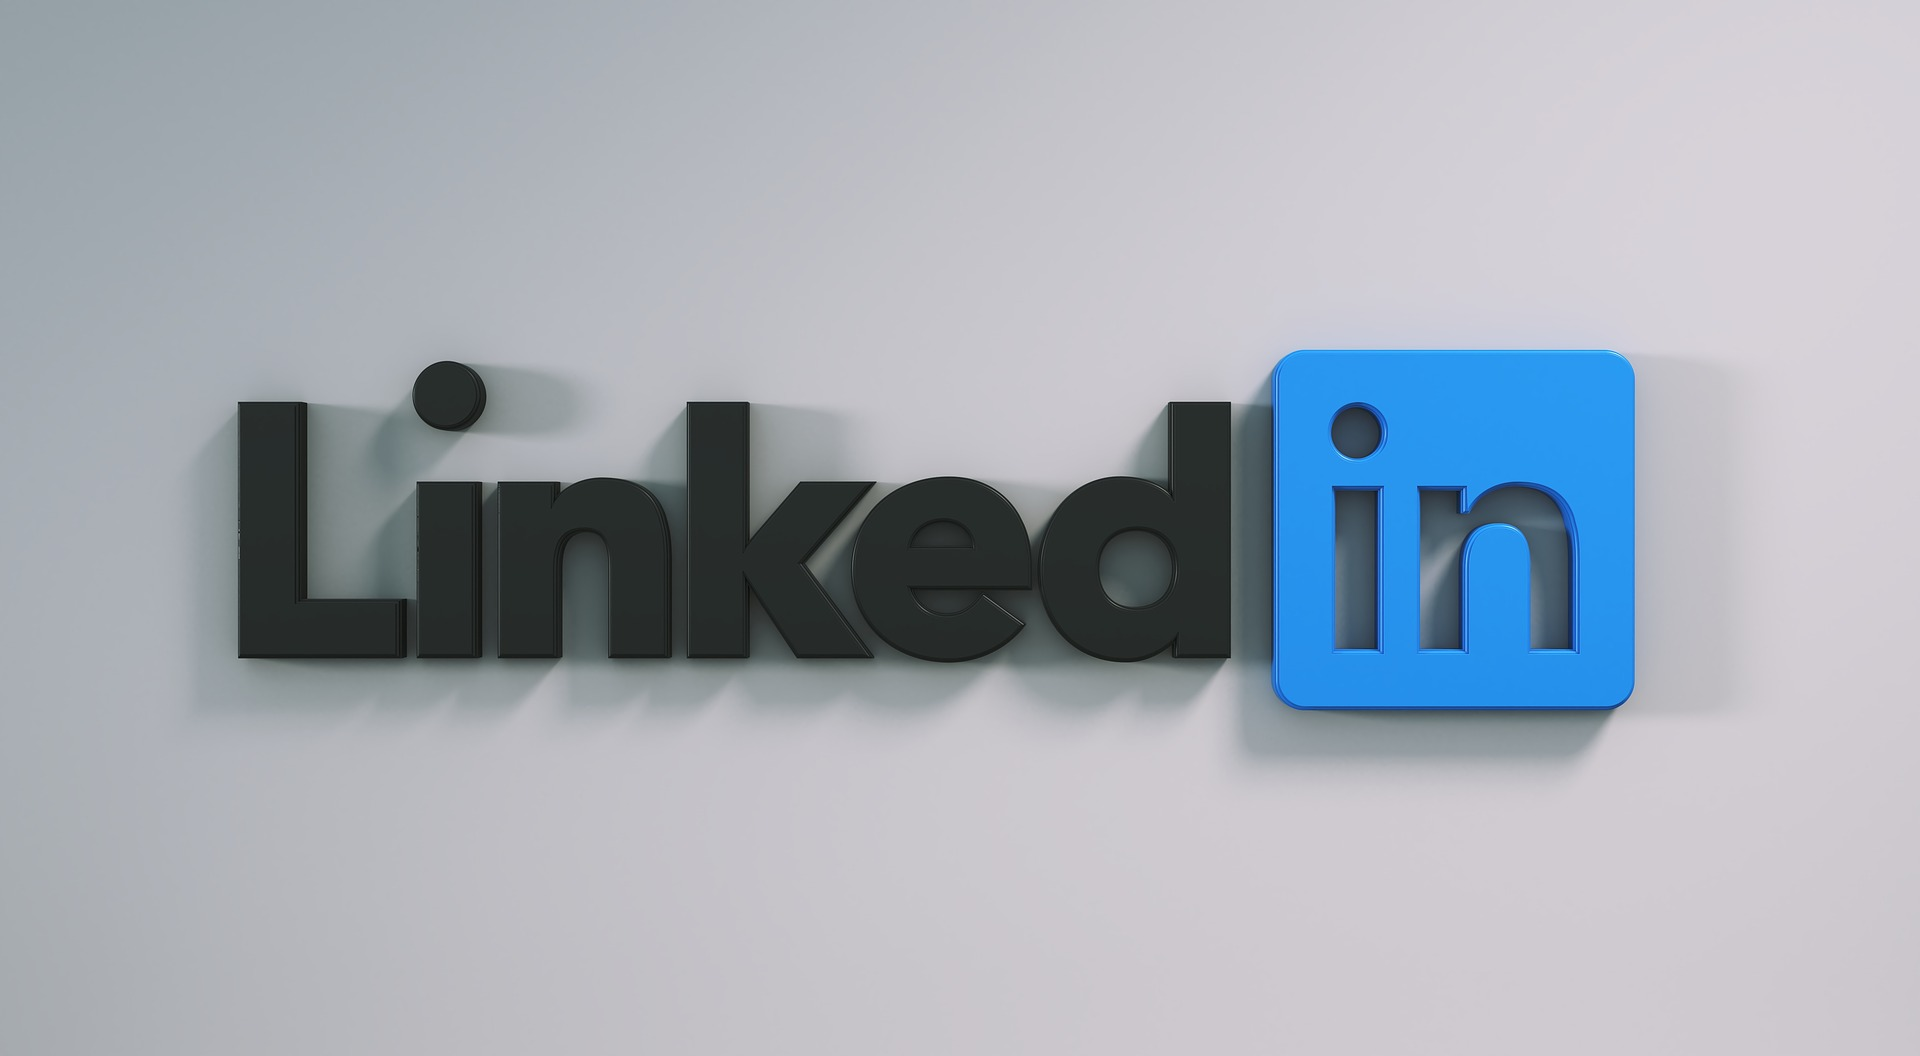 3 ways recruiters can increase their LinkedIn engagement